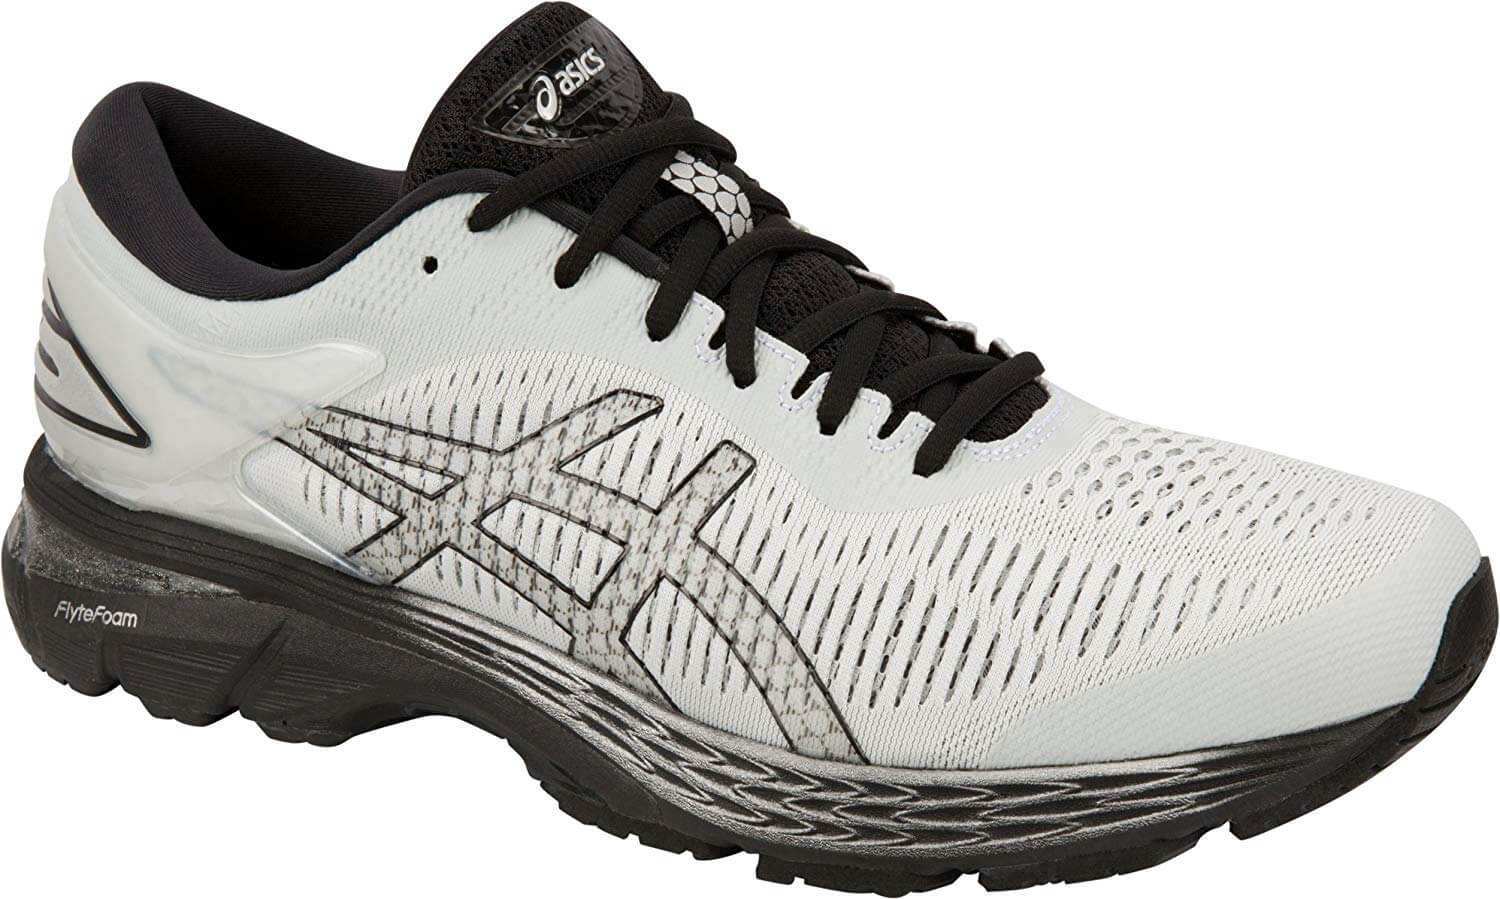 be54504139706 Asics Gel Kayano 25 Review - To Buy or Not in May 2019